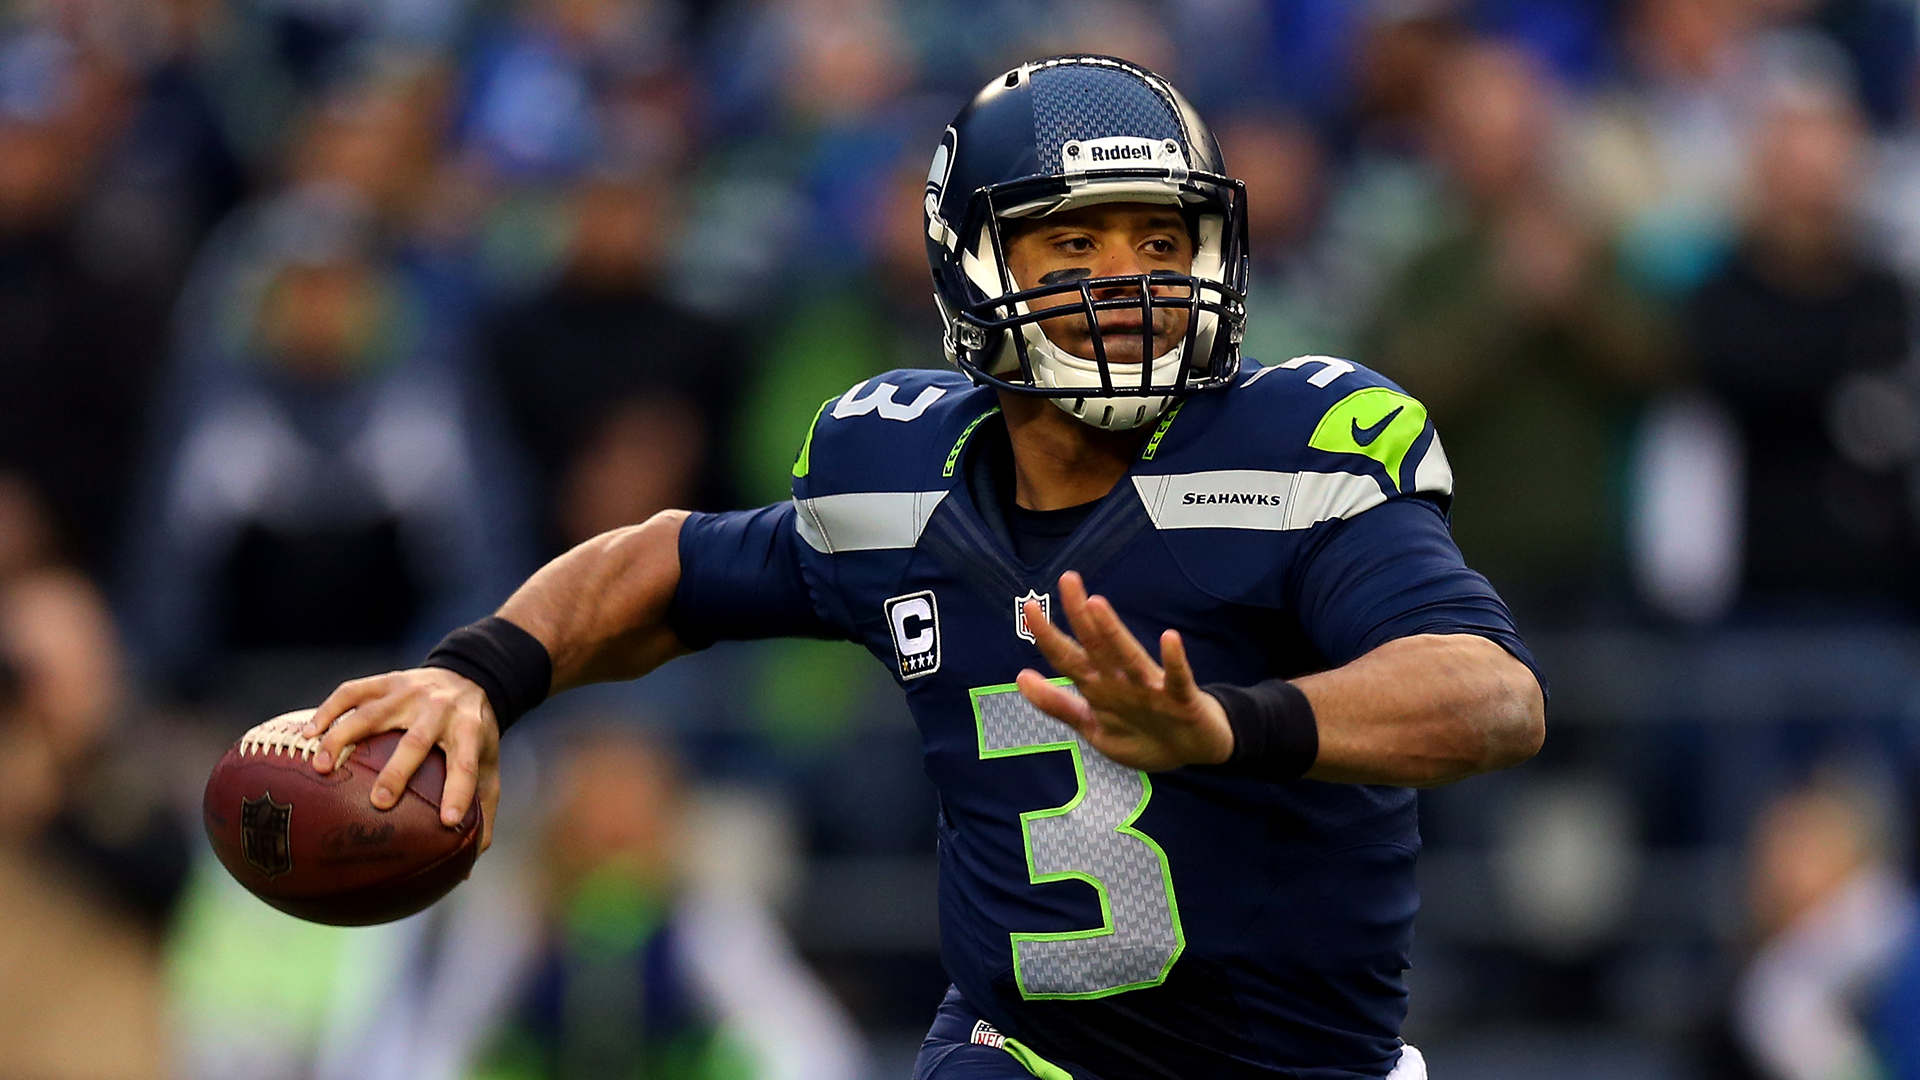 Russell Wilson, RGIII or Andrew Luck: Which one will win more Super Bowls? - The Washington Post